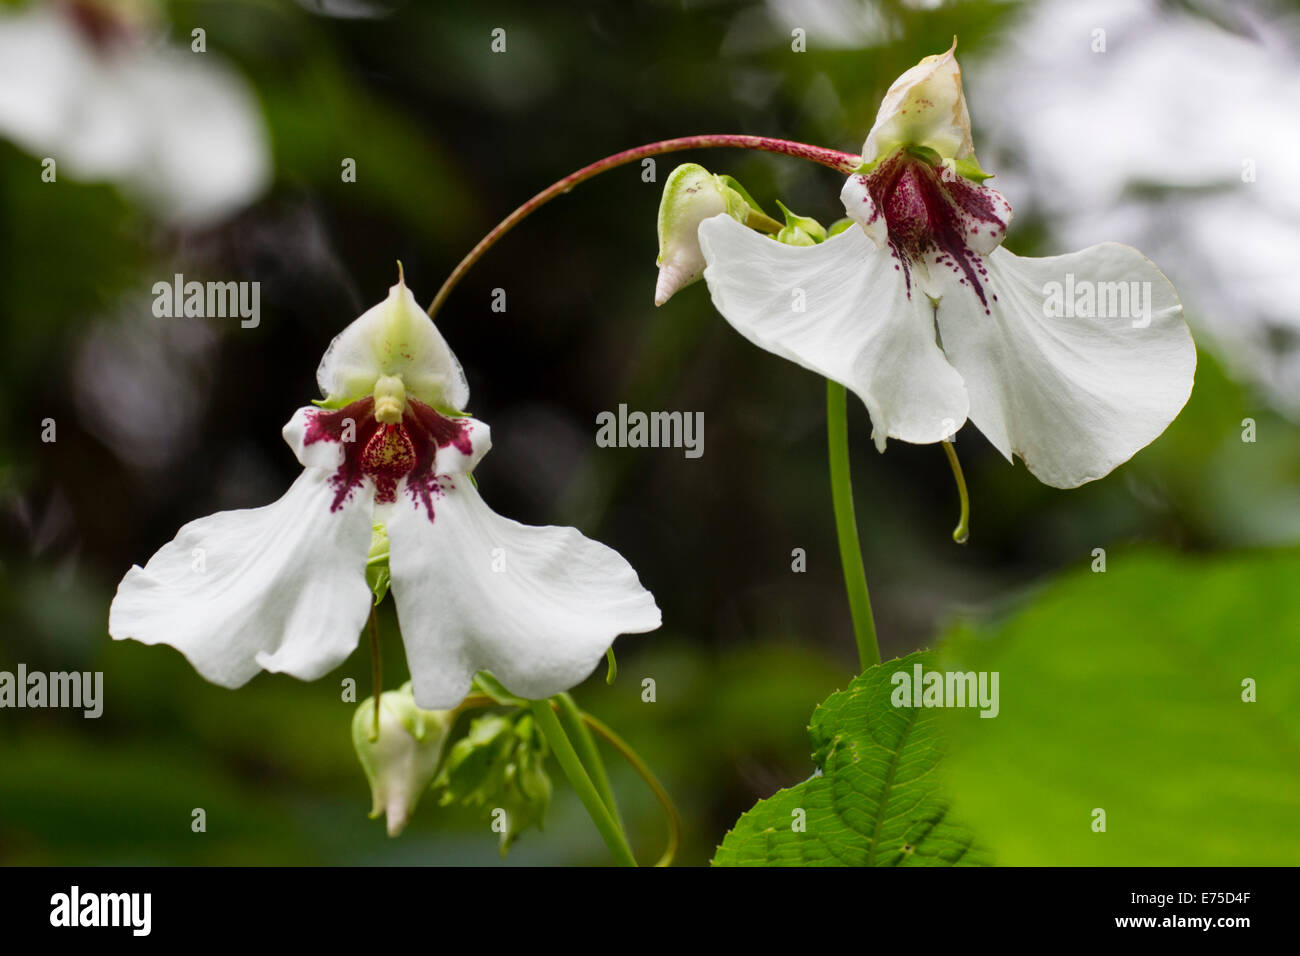 Large Flowers Of The Perennial Impatiens Tinctoria Stock Photo